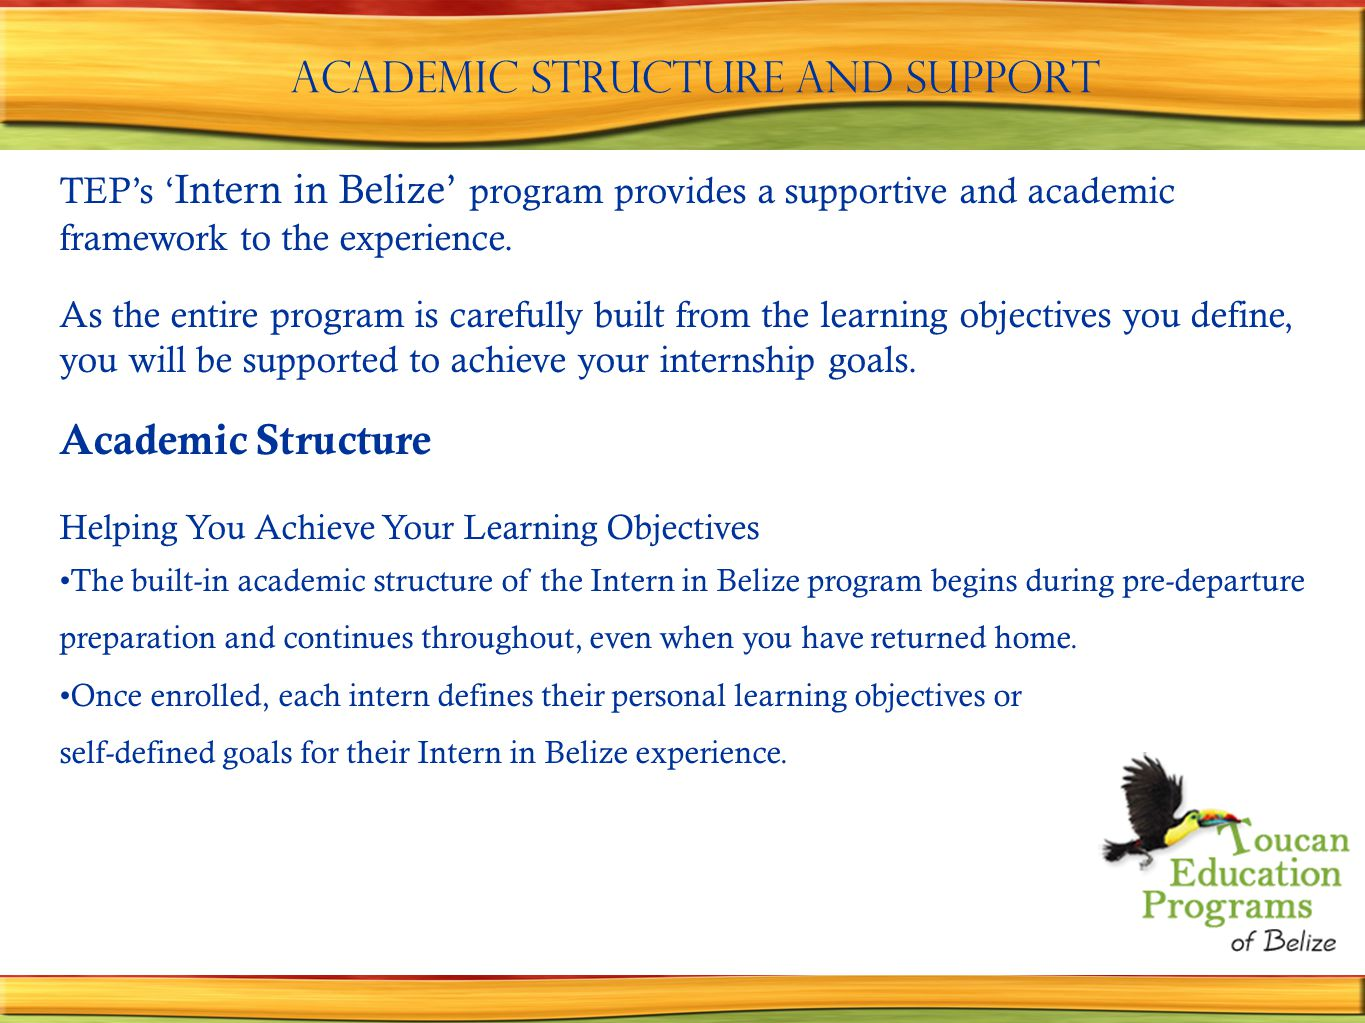 Academic structure and support TEP's ' Intern in Belize' program provides a supportive and academic framework to the experience.